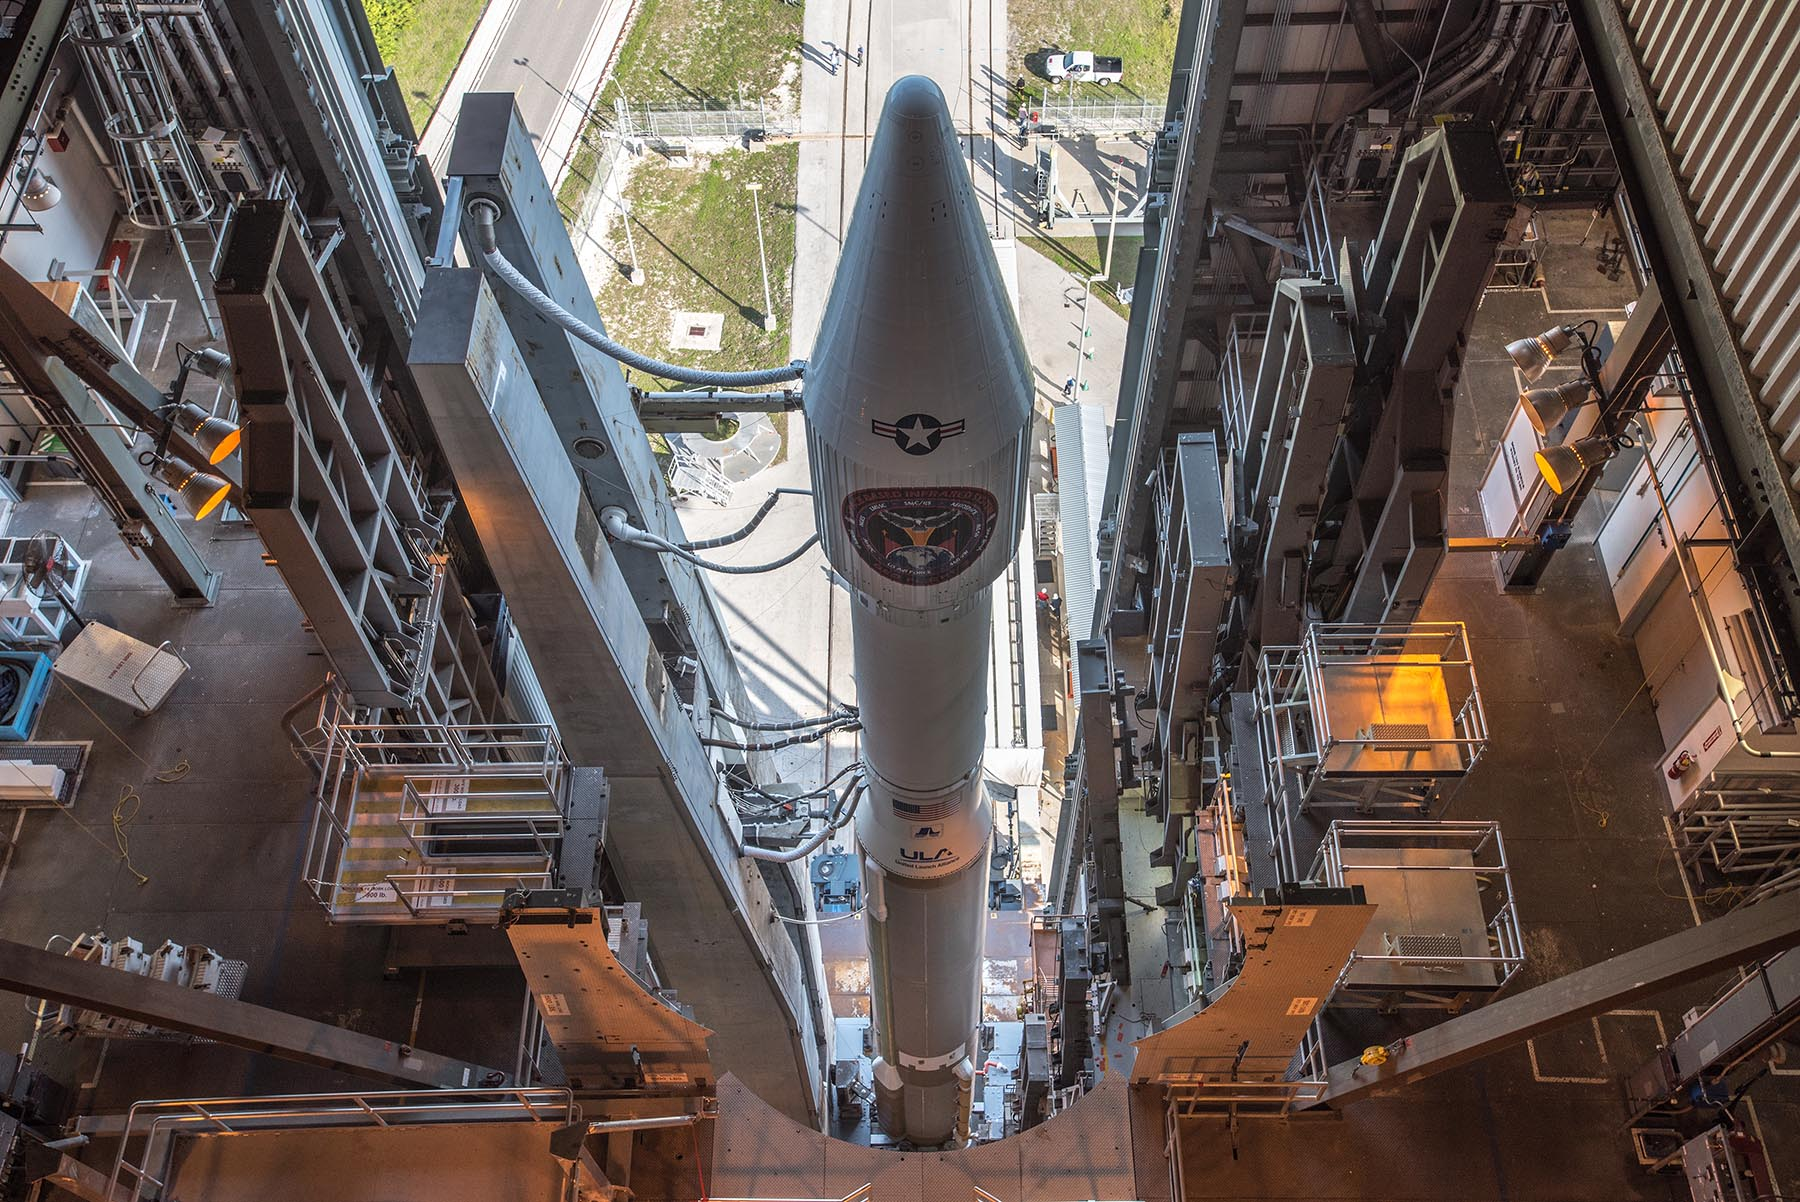 The SBIRS GEO Flight 3 satellite awaits launch from Space Launch Complex-41 at Cape Canaveral Air Force Station in Florida. (Courtesy of ULA)